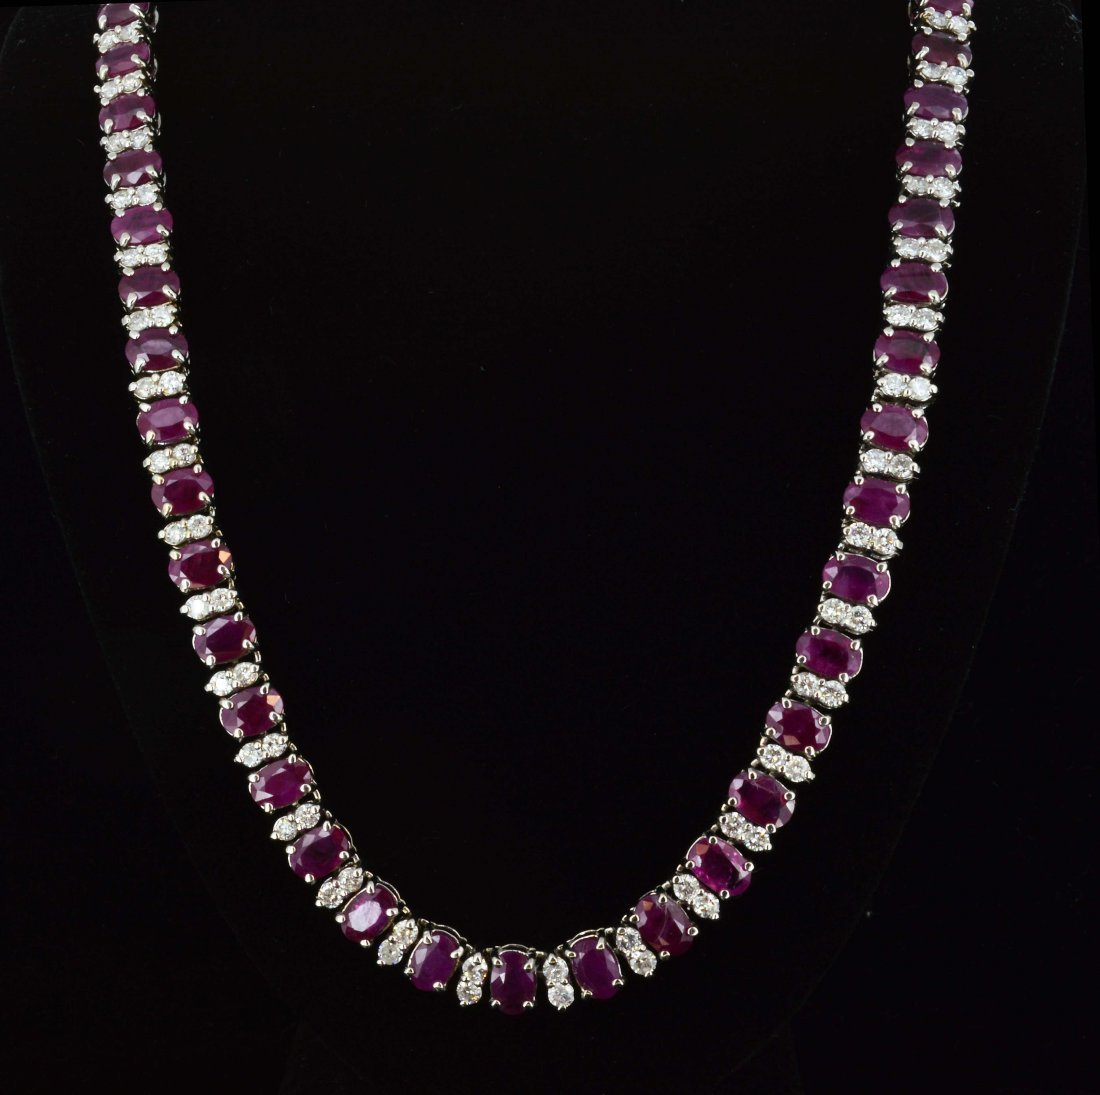 14K Gold, 32CT Ruby & 5.02CT Diamond Necklace